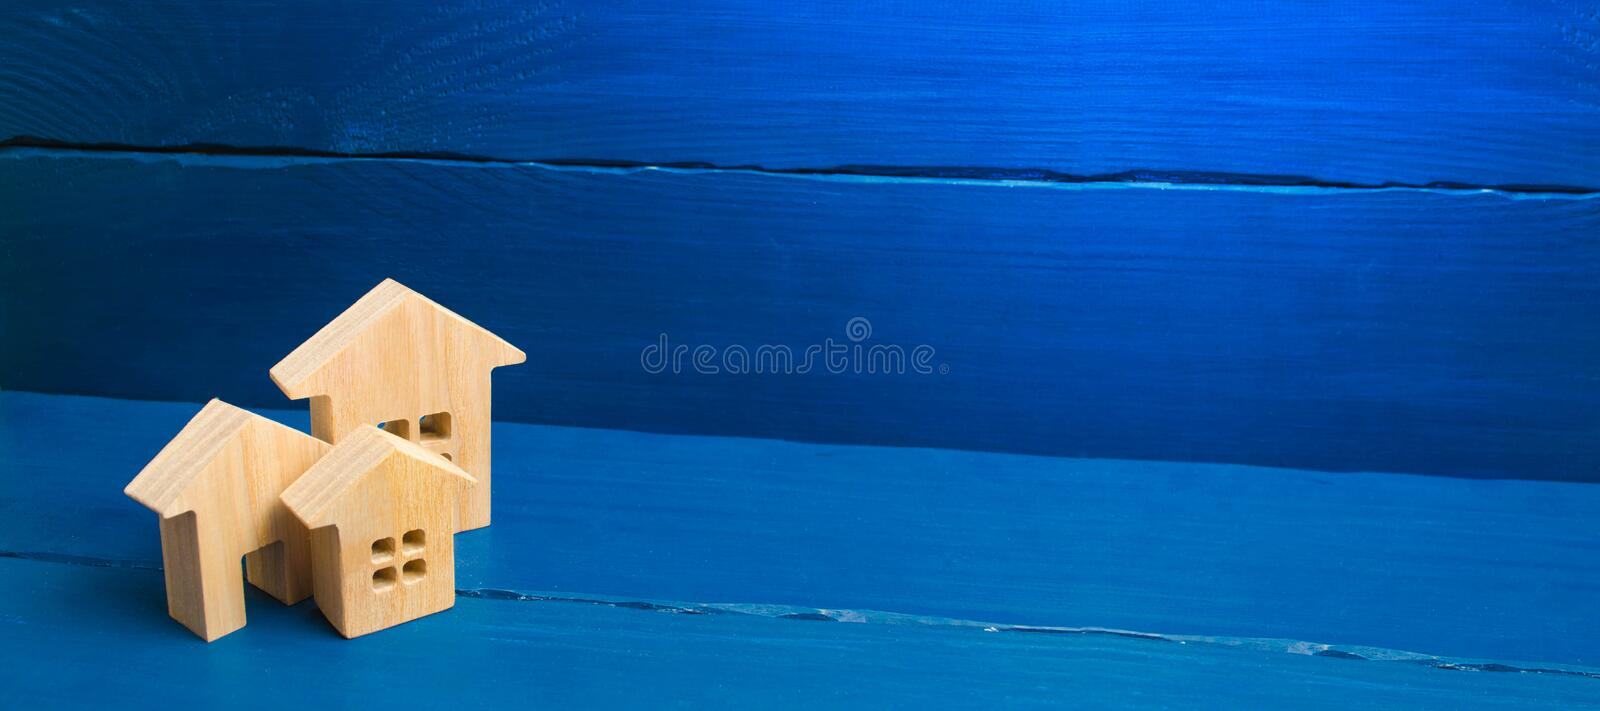 Buying and selling of real estate, construction. Three houses on a blue background. Apartments and apartments. City, settlement. Minimalism. presentations royalty free stock photography